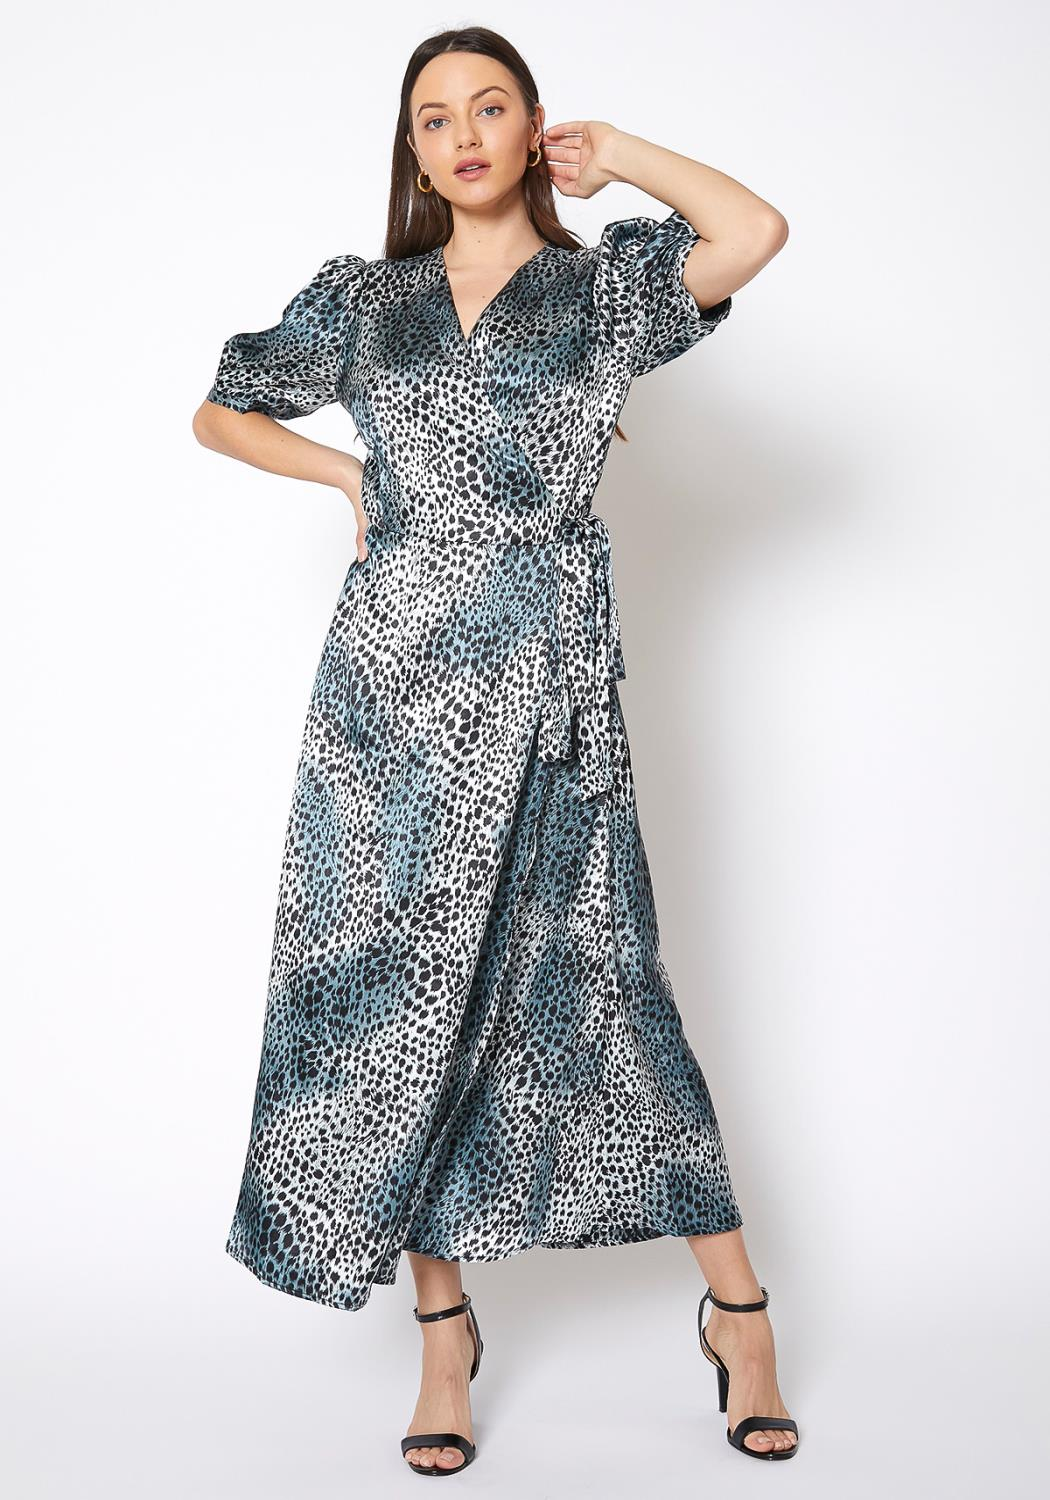 Pleione Satin Cheetah Print Wrap Maxi Dress